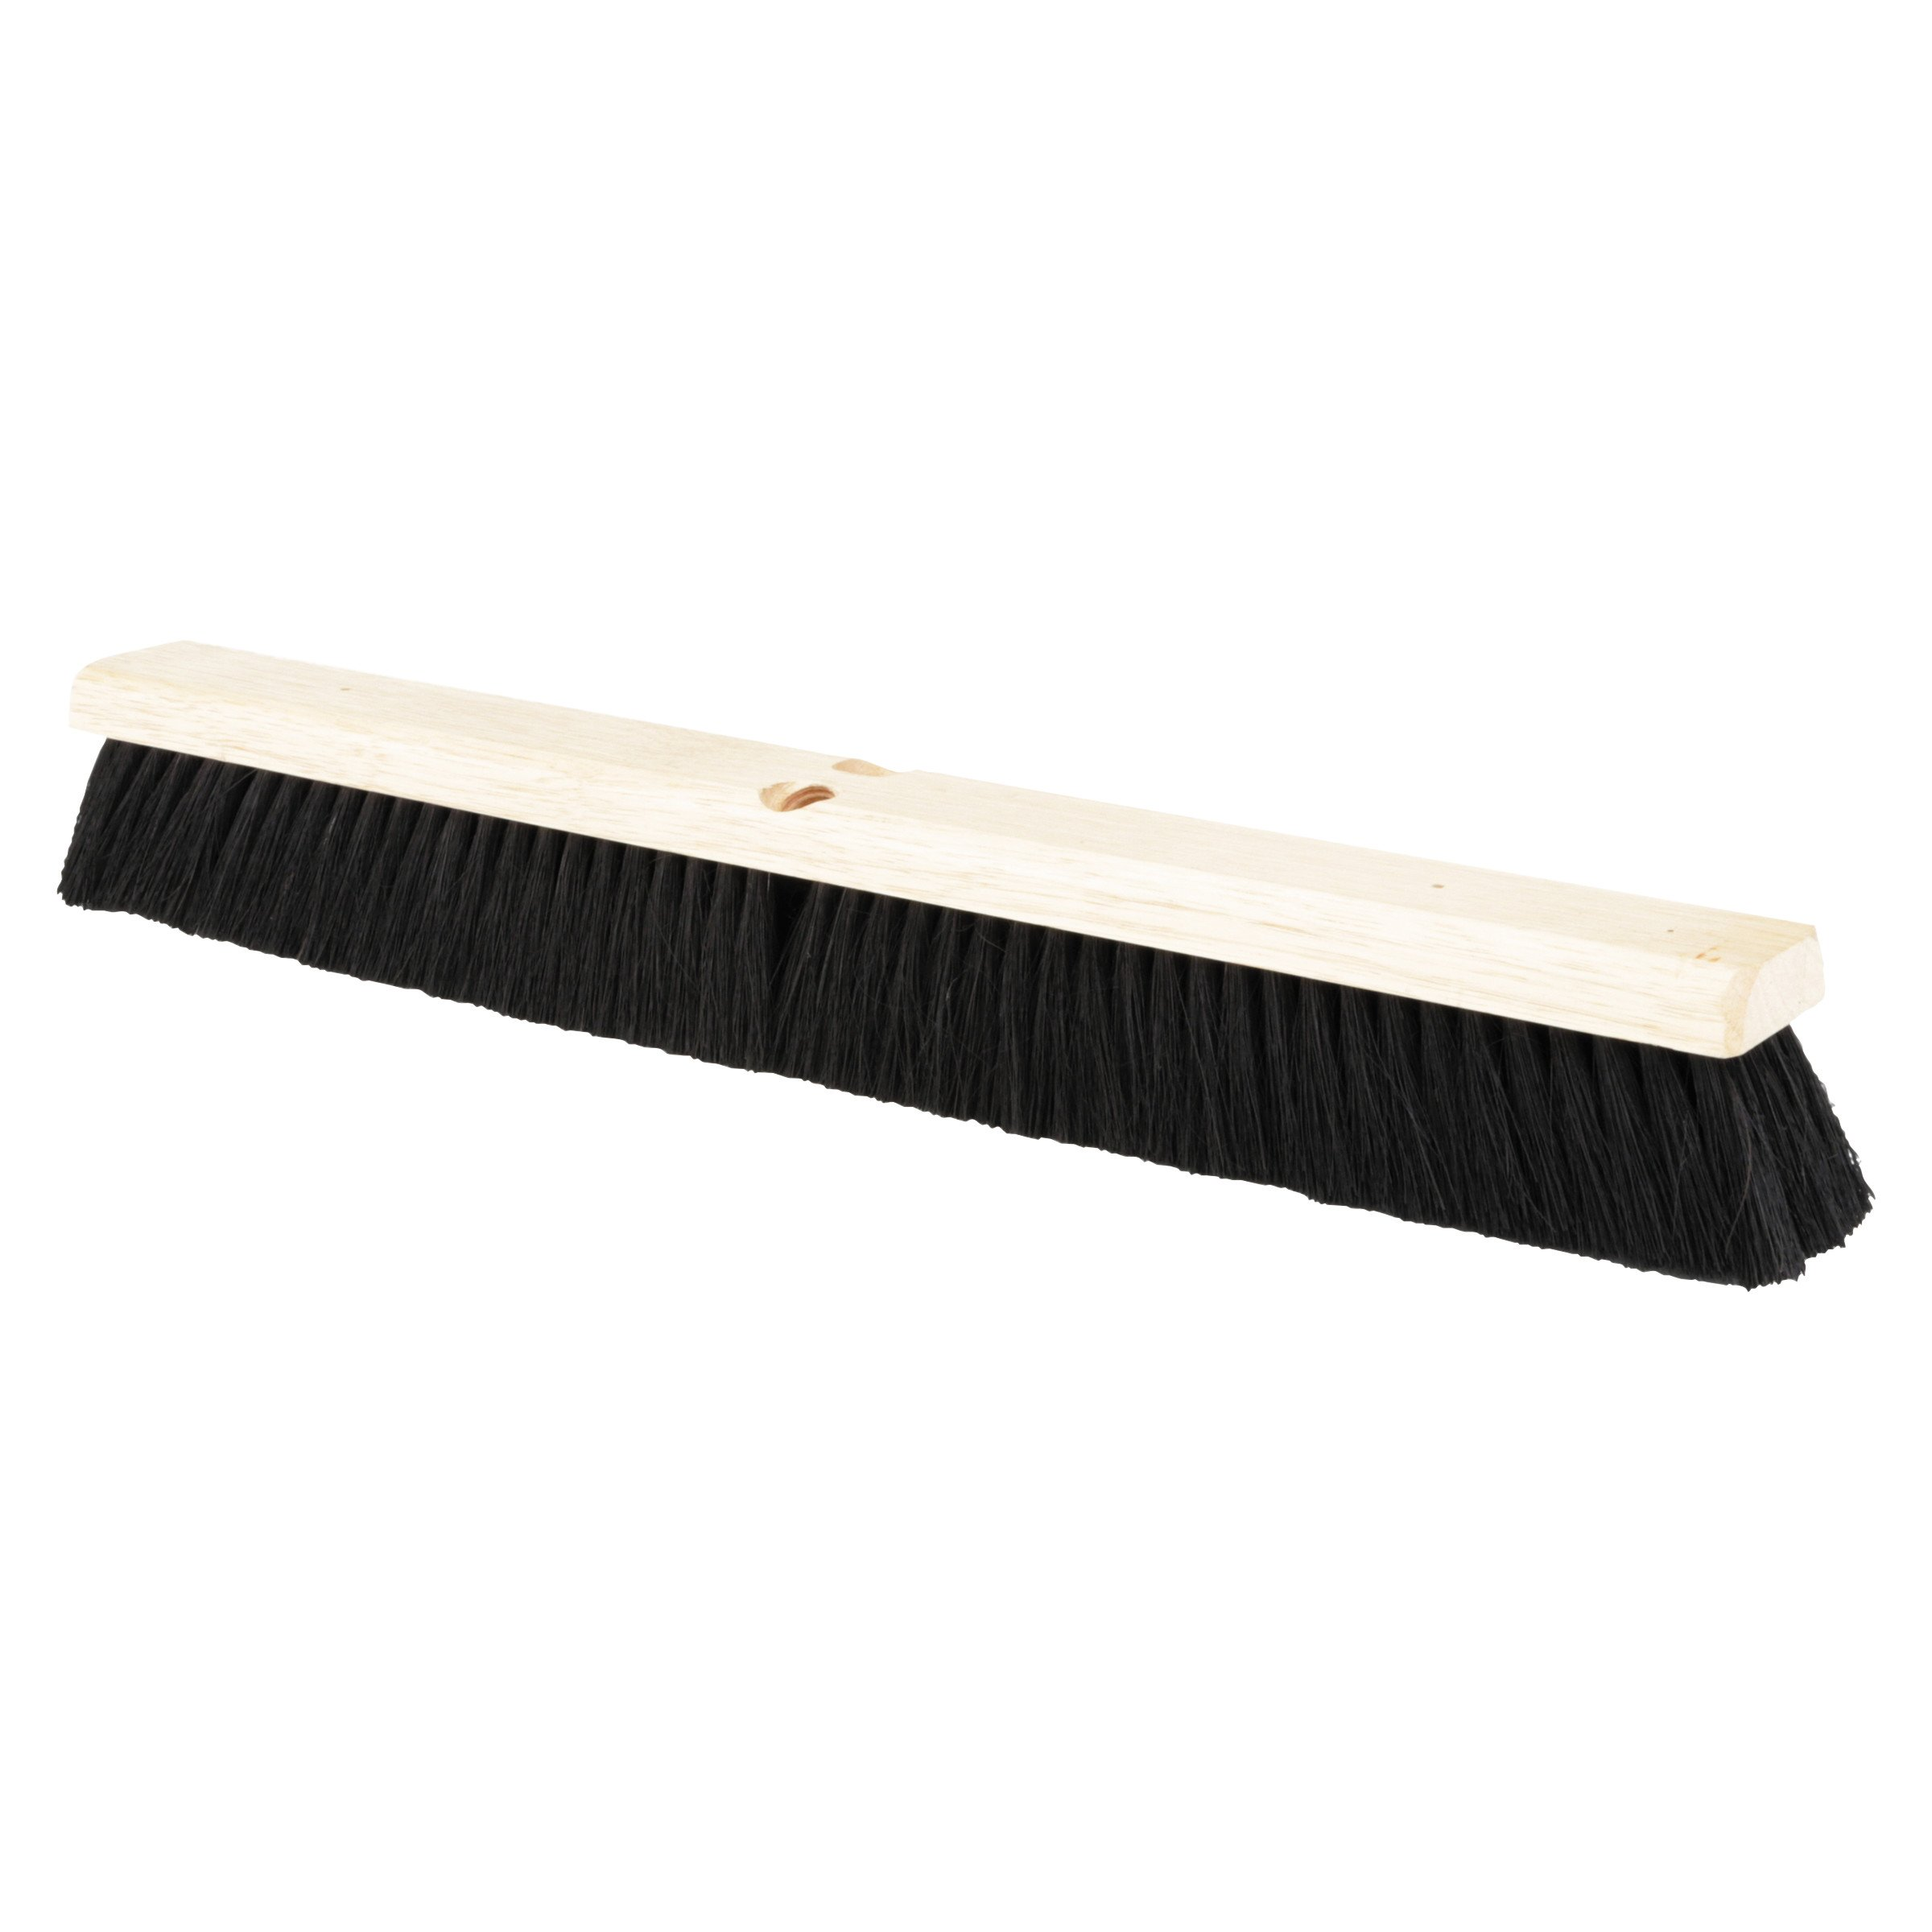 Boardwalk BWK20224 Floor Brush Head, 2 1/2'' Black Tampico Fiber, 24'' by Boardwalk